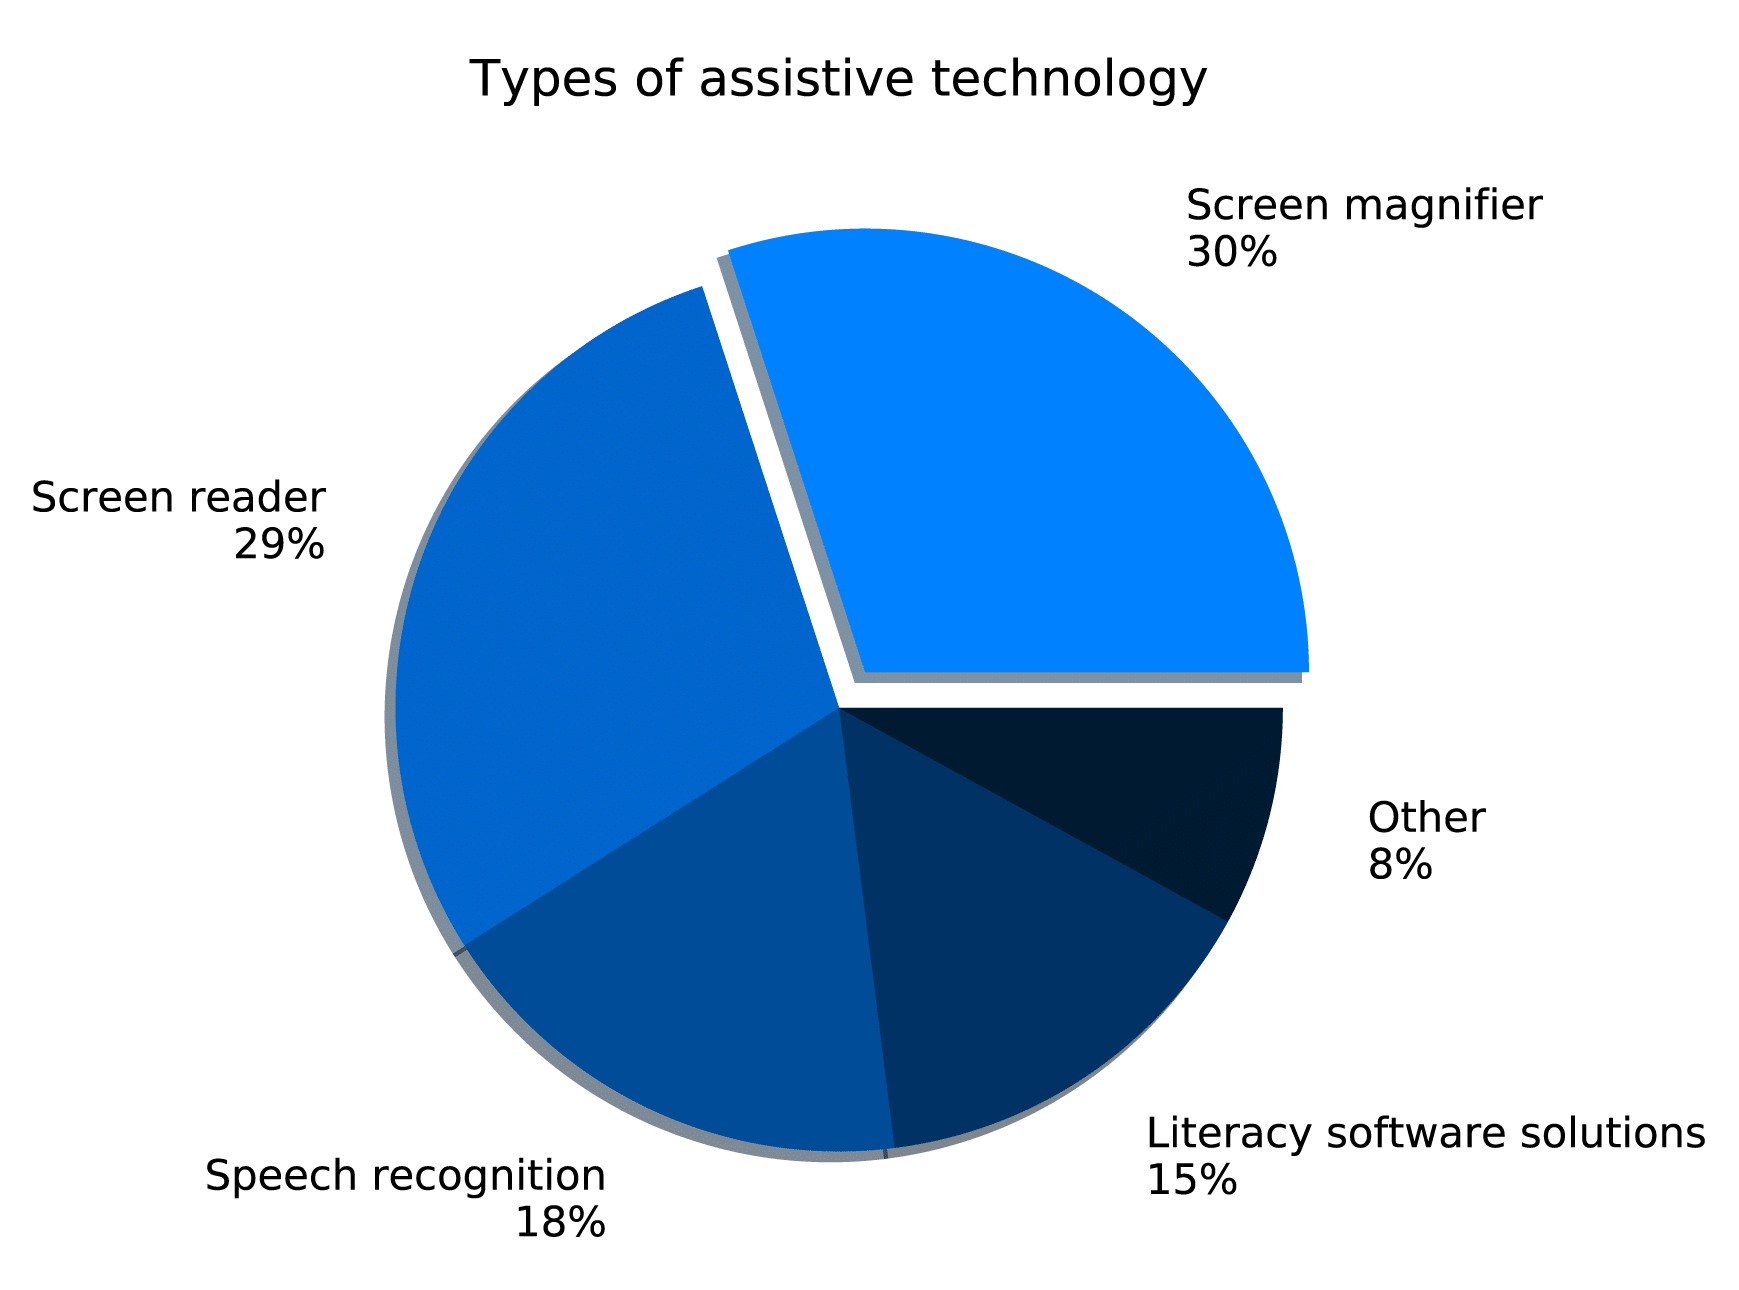 Pie chart showing: screen magnifier 30%, screen reader 29%, speech recognition 18%, literacy software solutions 15%, and other 8%.